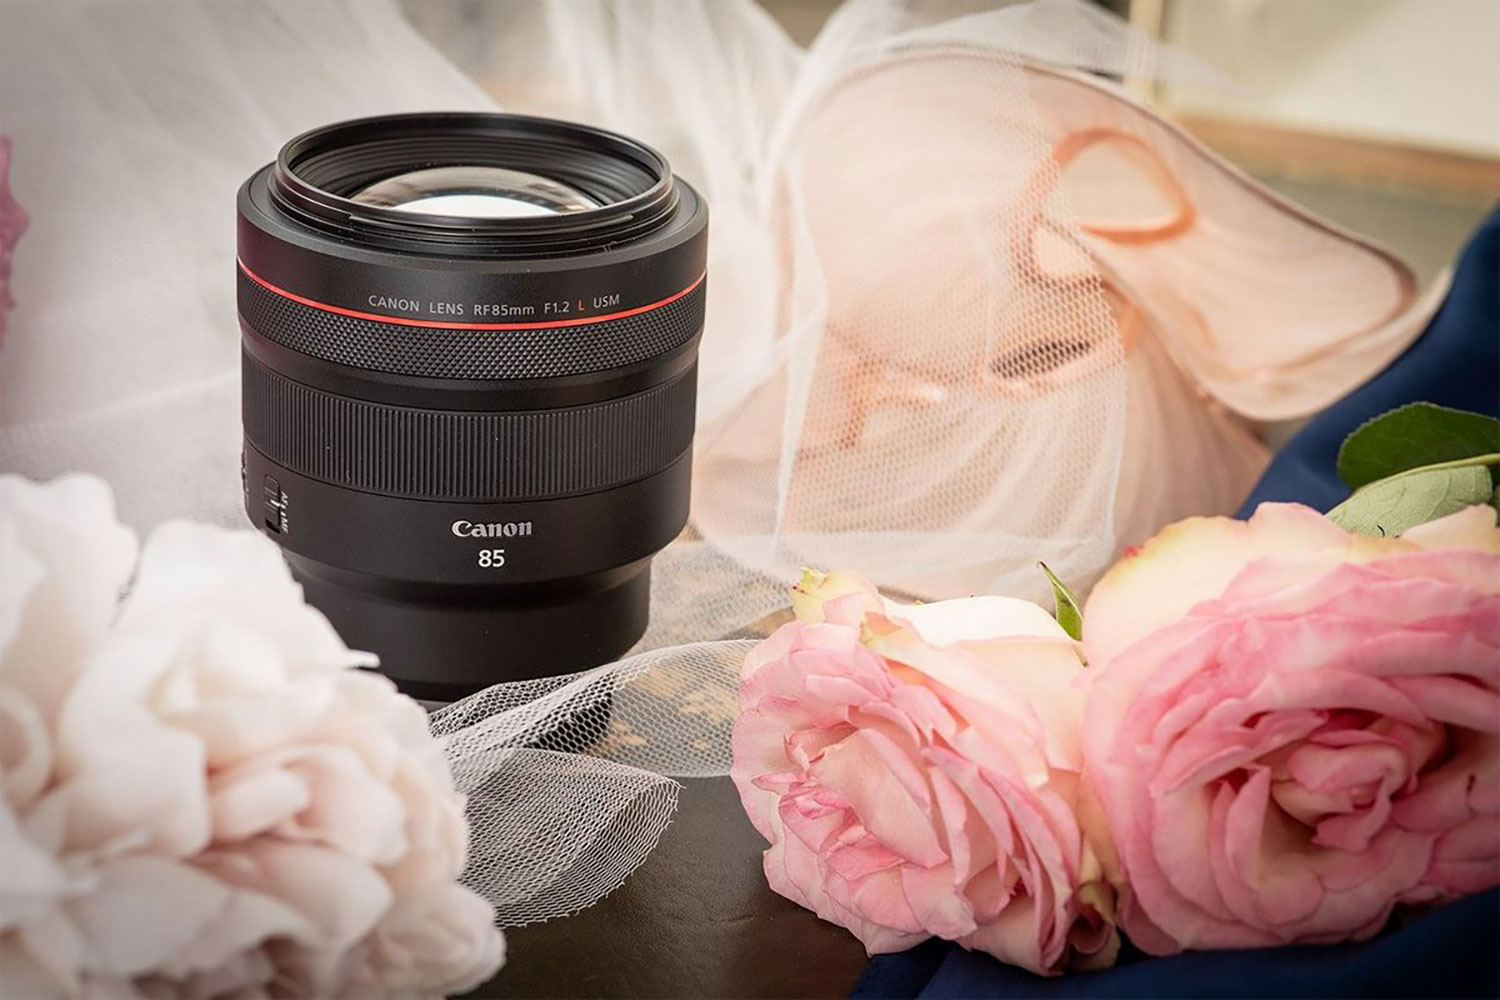 NEWS: Canon Announces RF 85MM F1.2L USM BR